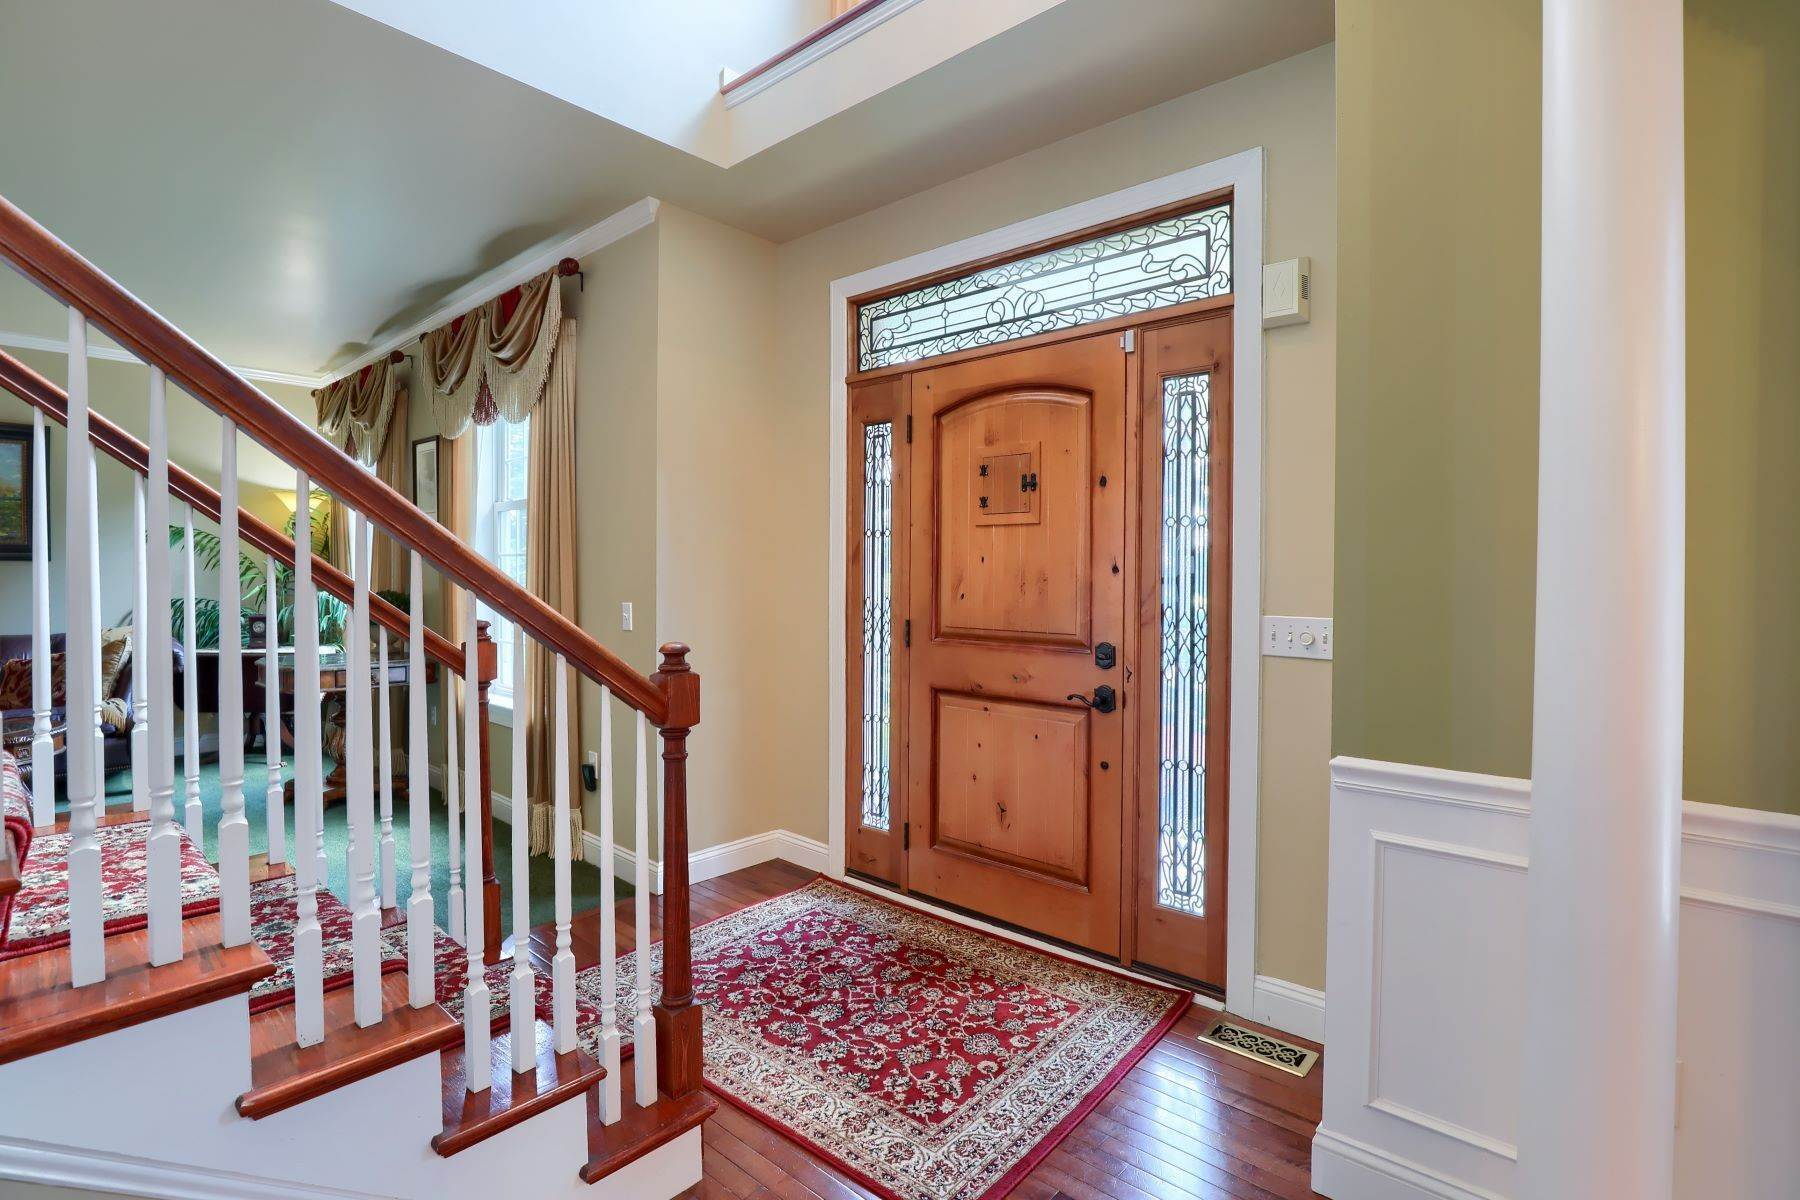 4. Single Family Homes for Sale at 195 W Millport Road Lititz, Pennsylvania 17543 United States